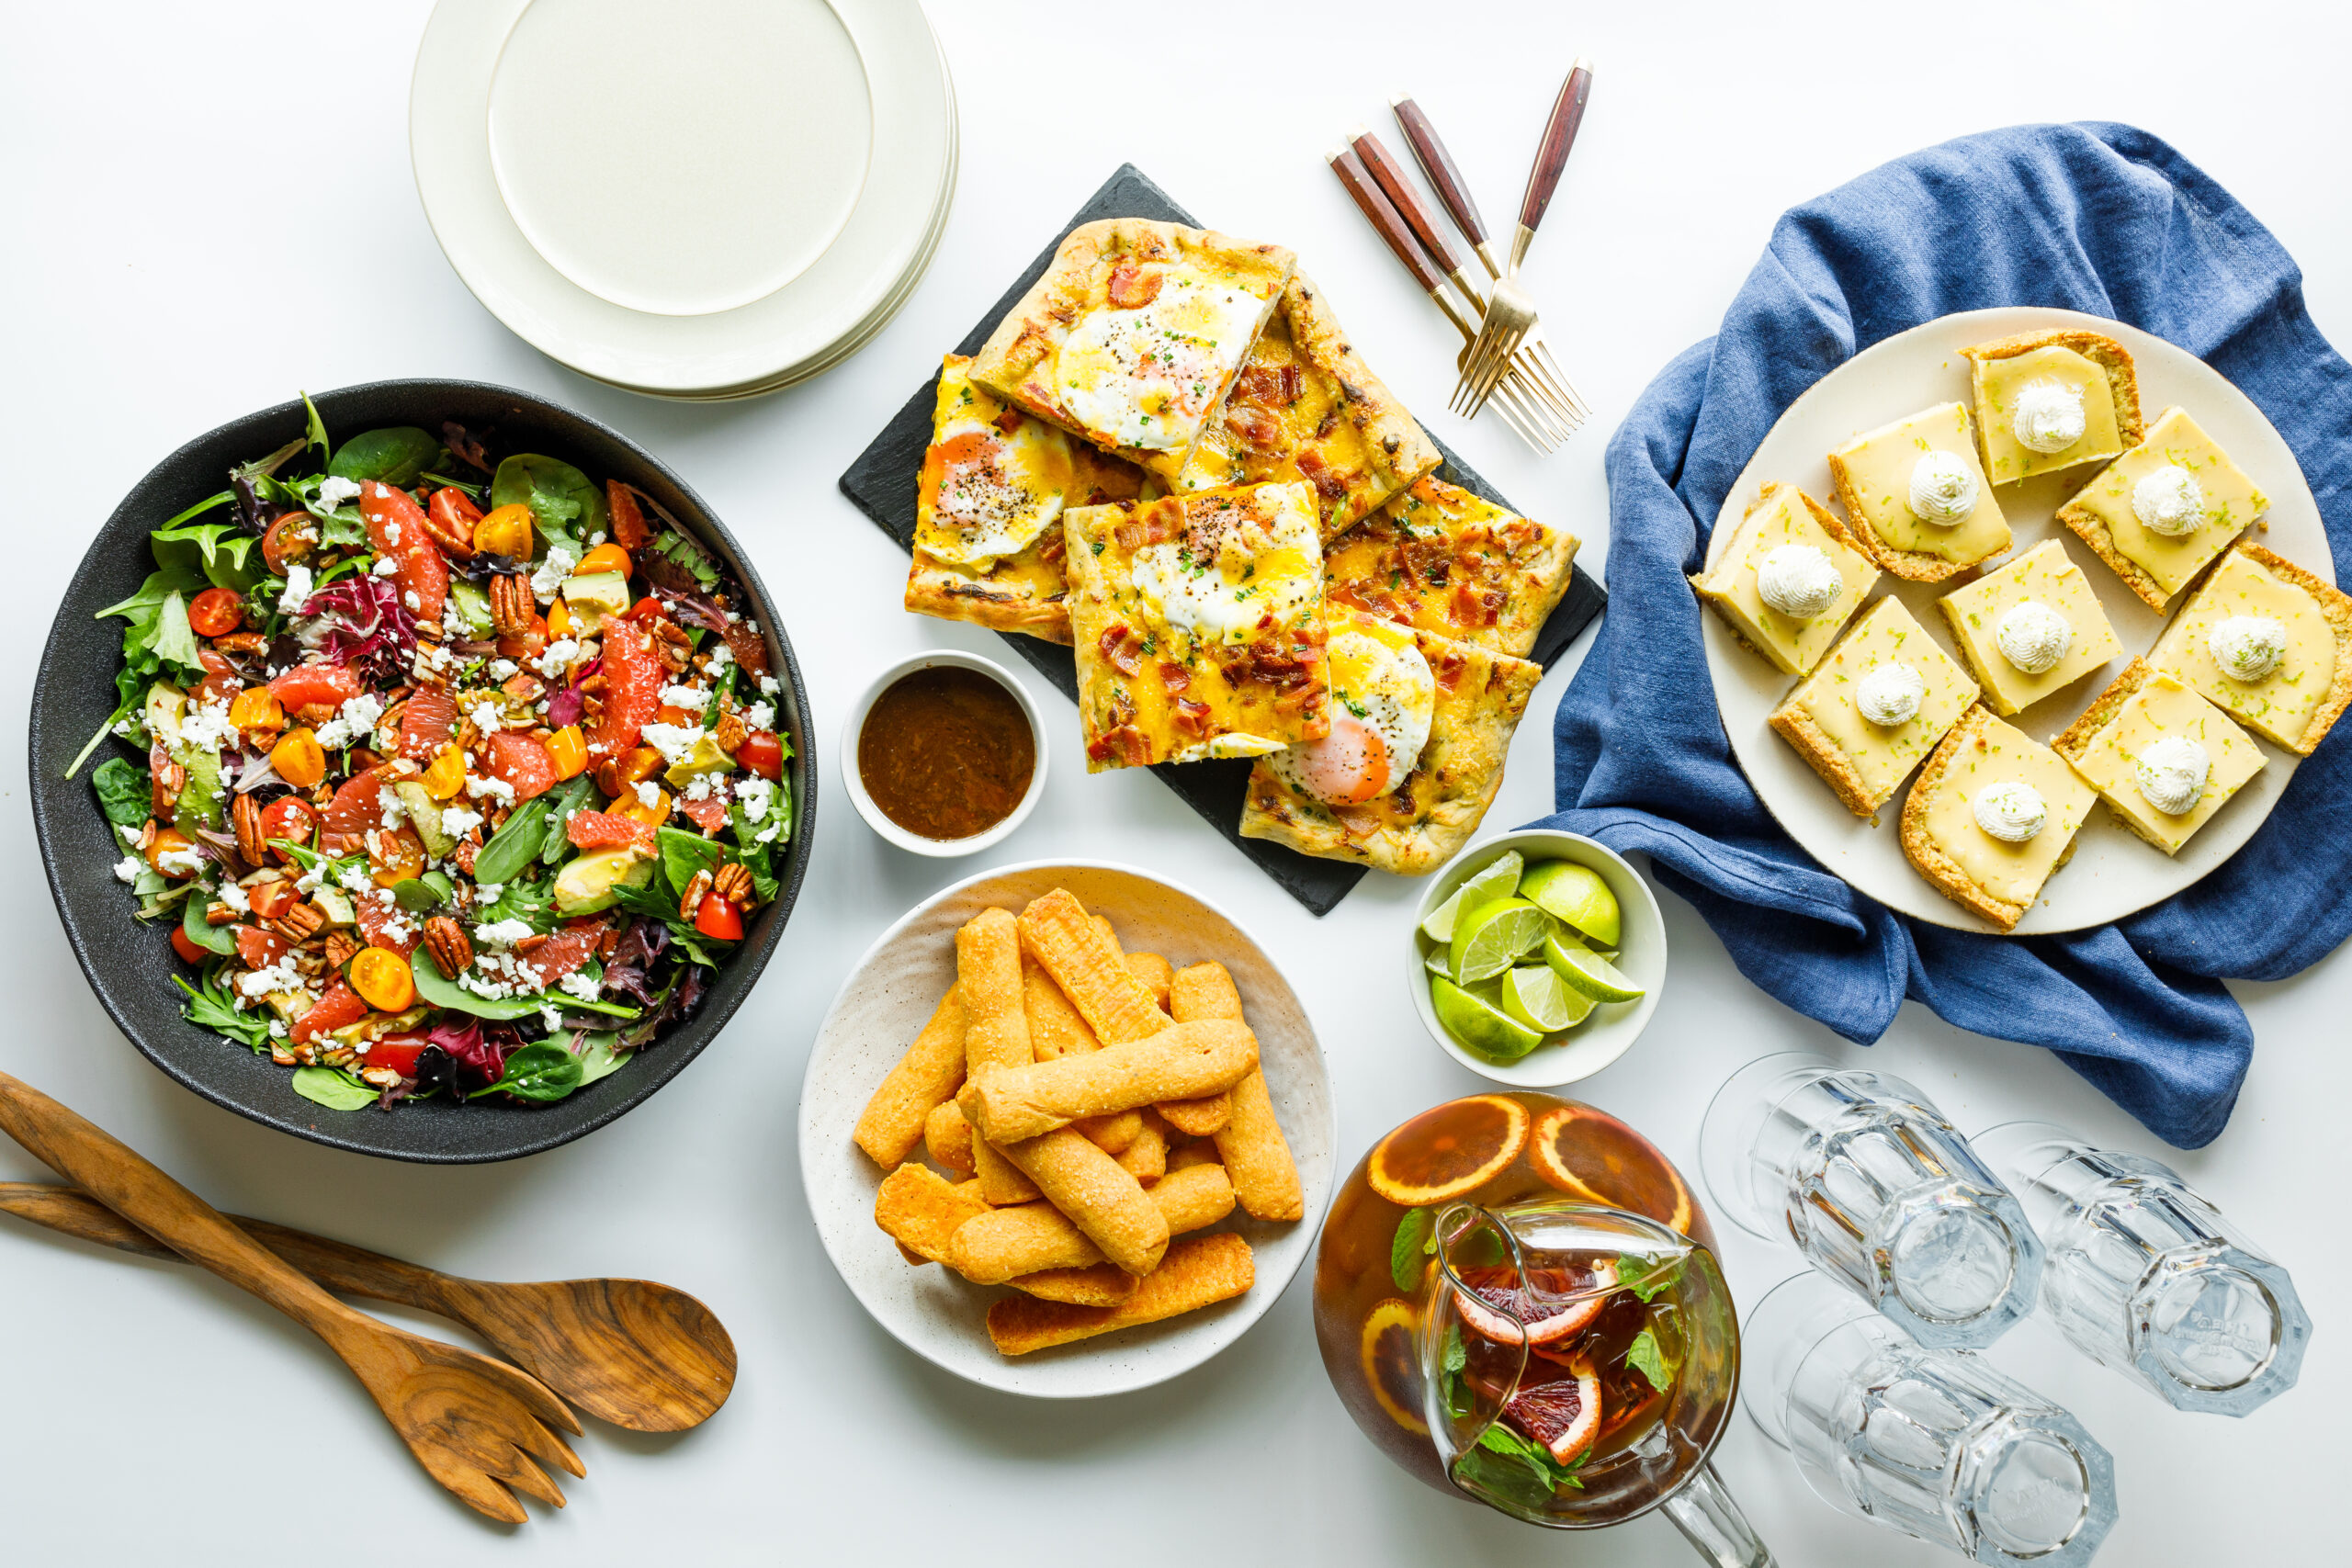 a spread of appetizers and snacks that could be used for a book club